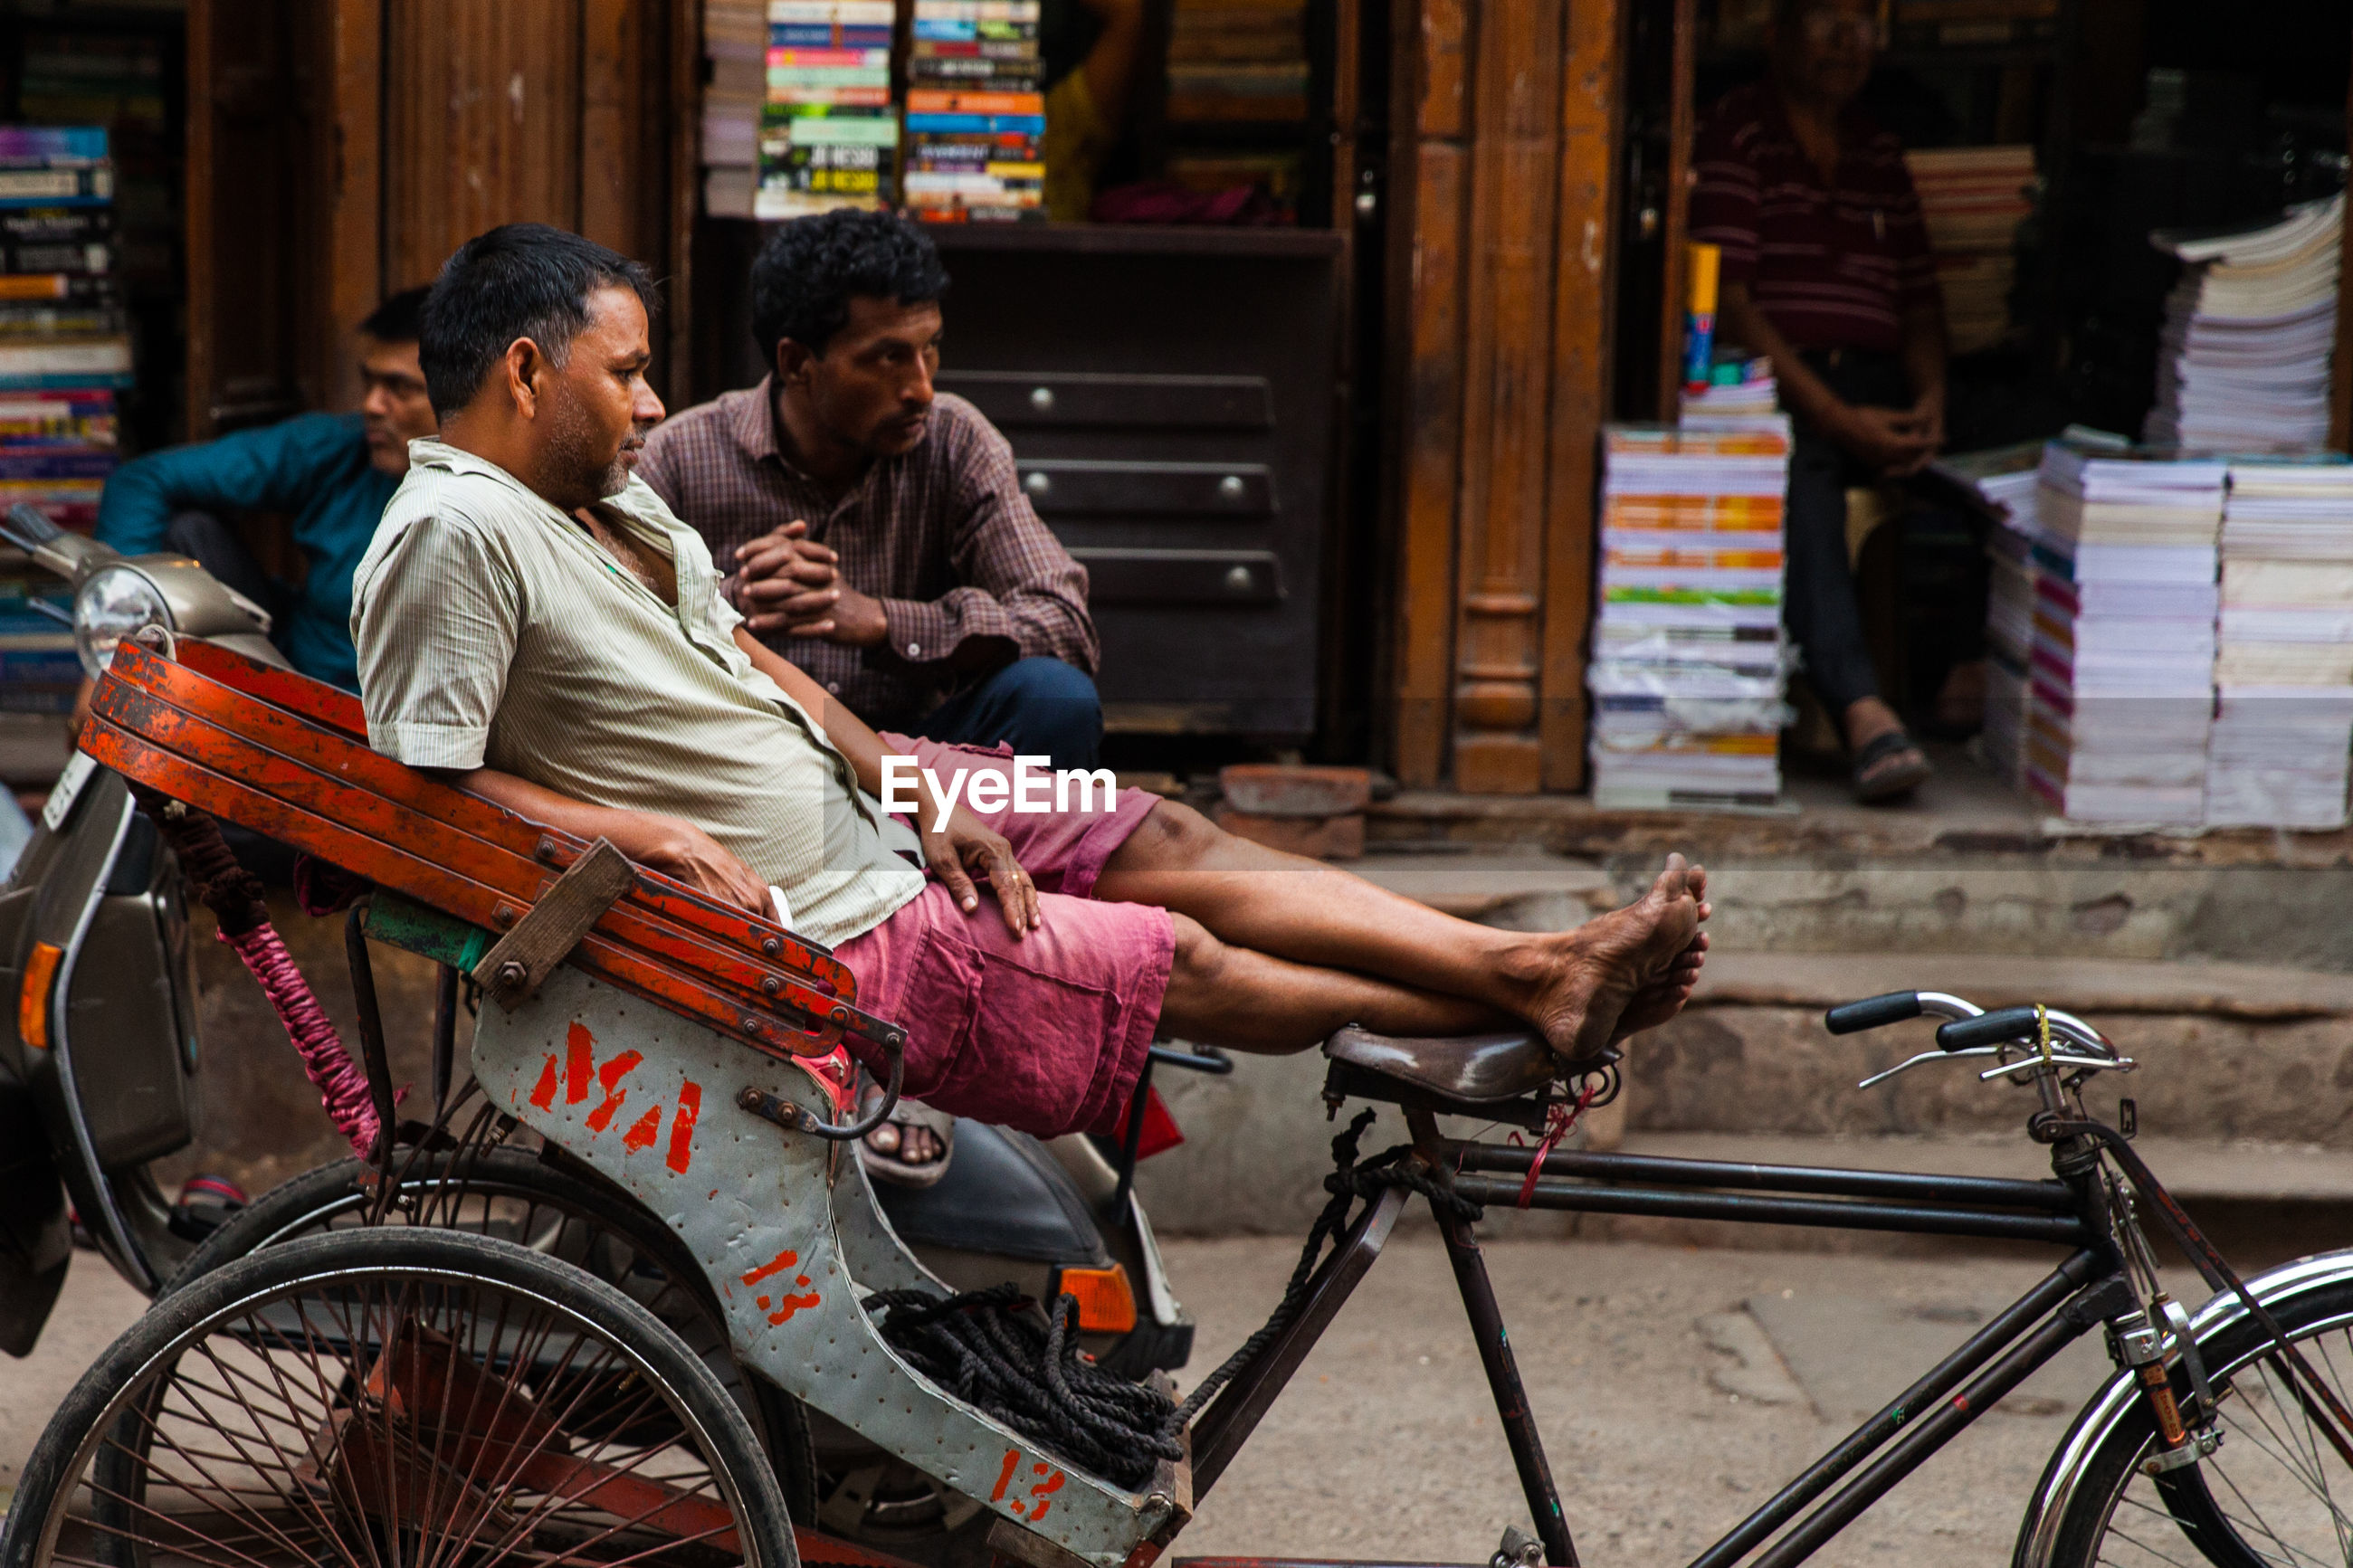 PEOPLE SITTING ON BICYCLE AT A AN ABANDONED